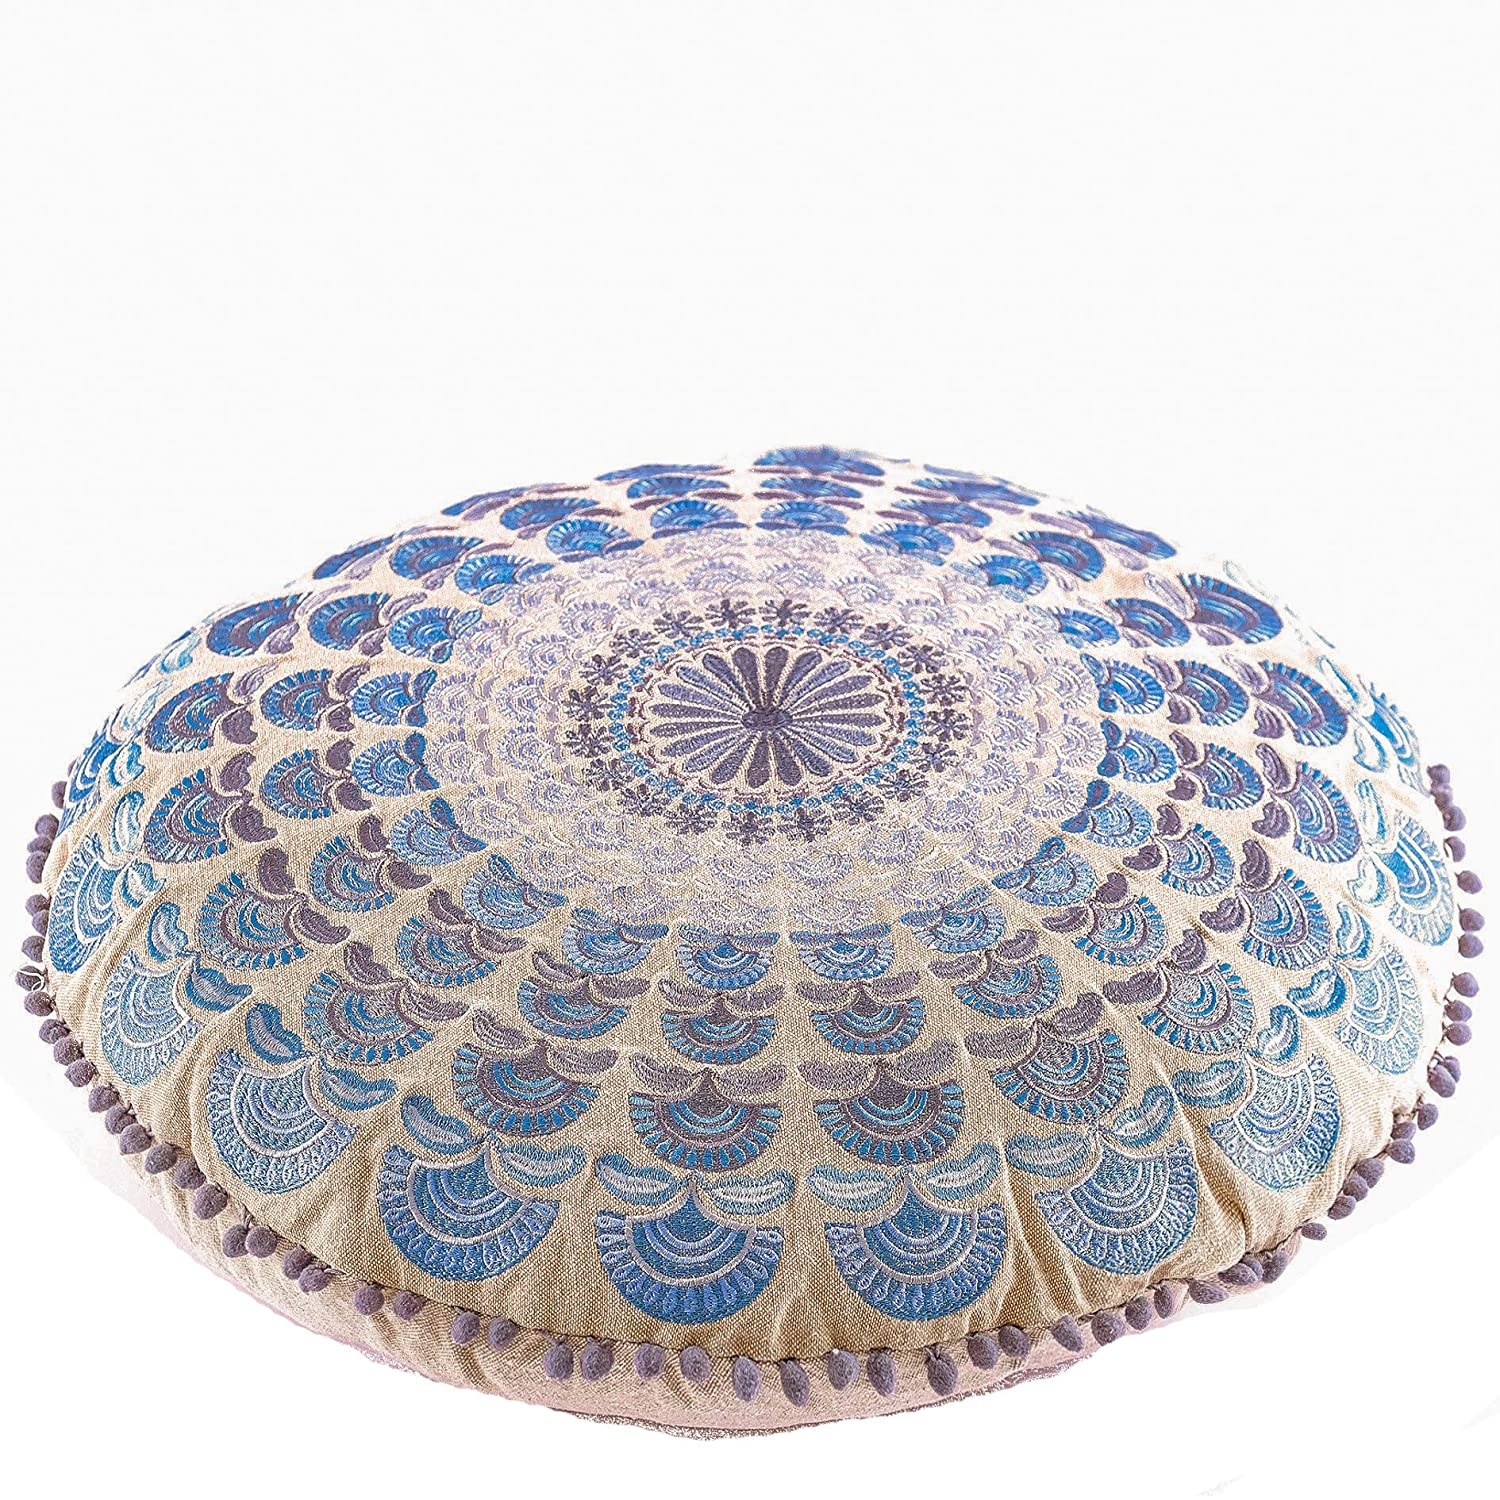 Mandala Life ART Bohemian Floor Cushion –Luxury, Artisan Room Décor Pouf for Meditation, Yoga, and Boho Chic Seating Area Floor Pillow – Accent Your Living Room, Bedroom, More – Red Peacock